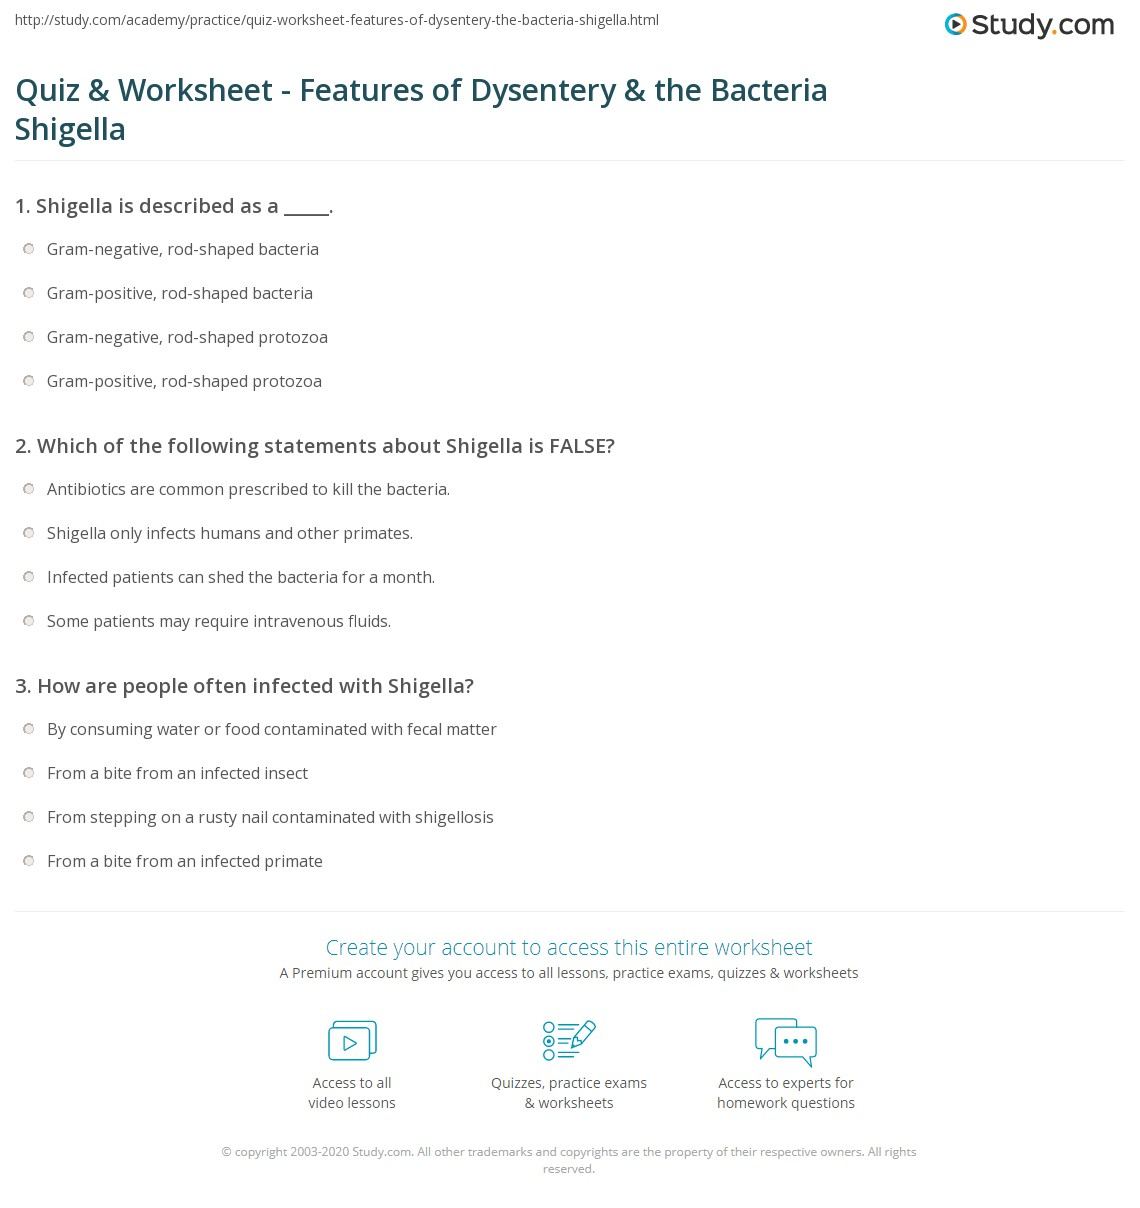 Quiz Worksheet Features Of Dysentery The Bacteria Shigella